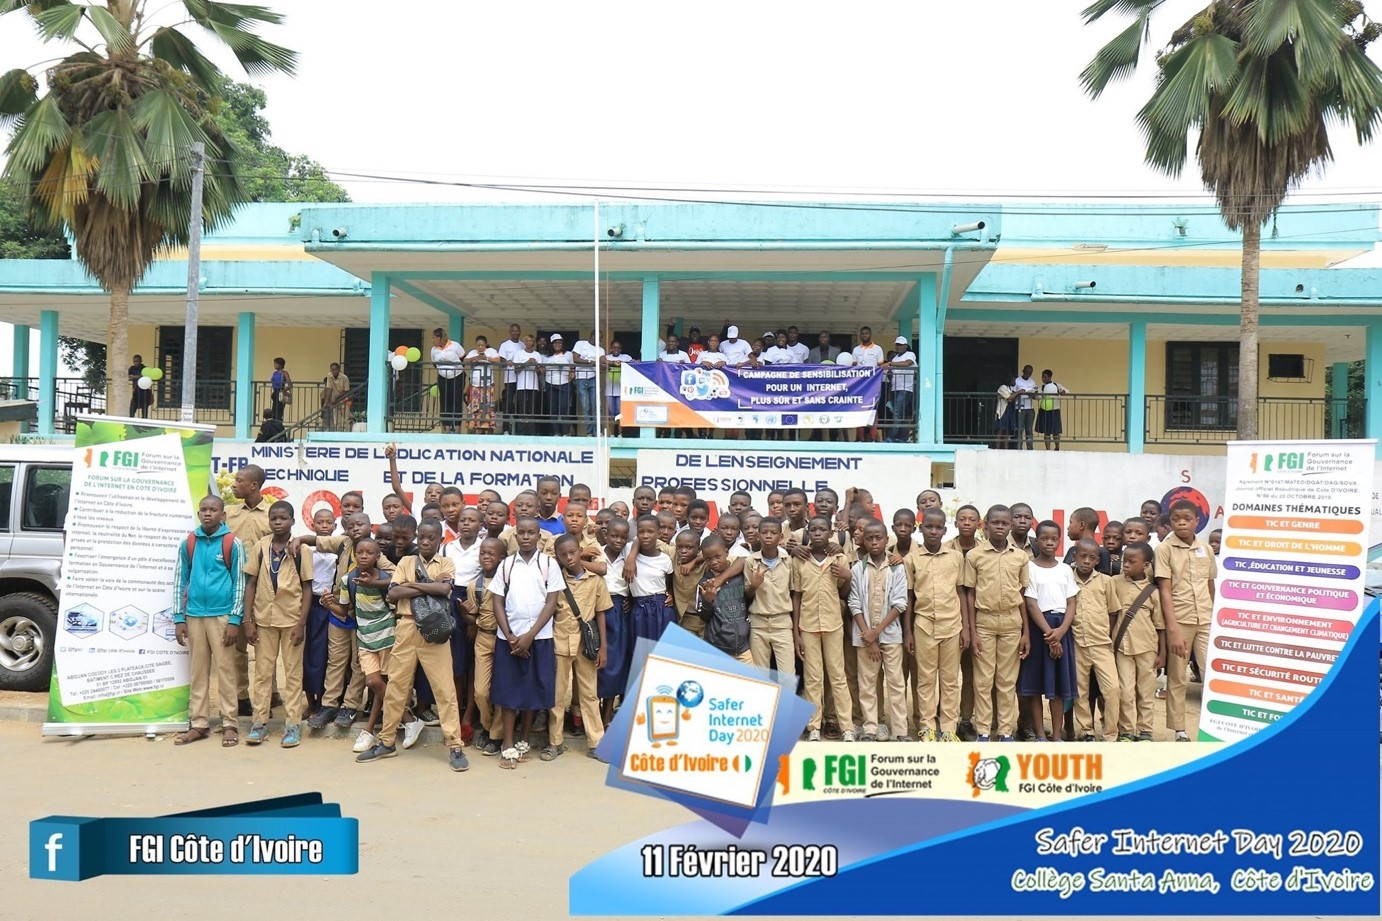 Picture of the Safer Internet Day celebrations in Côte d'Ivoire